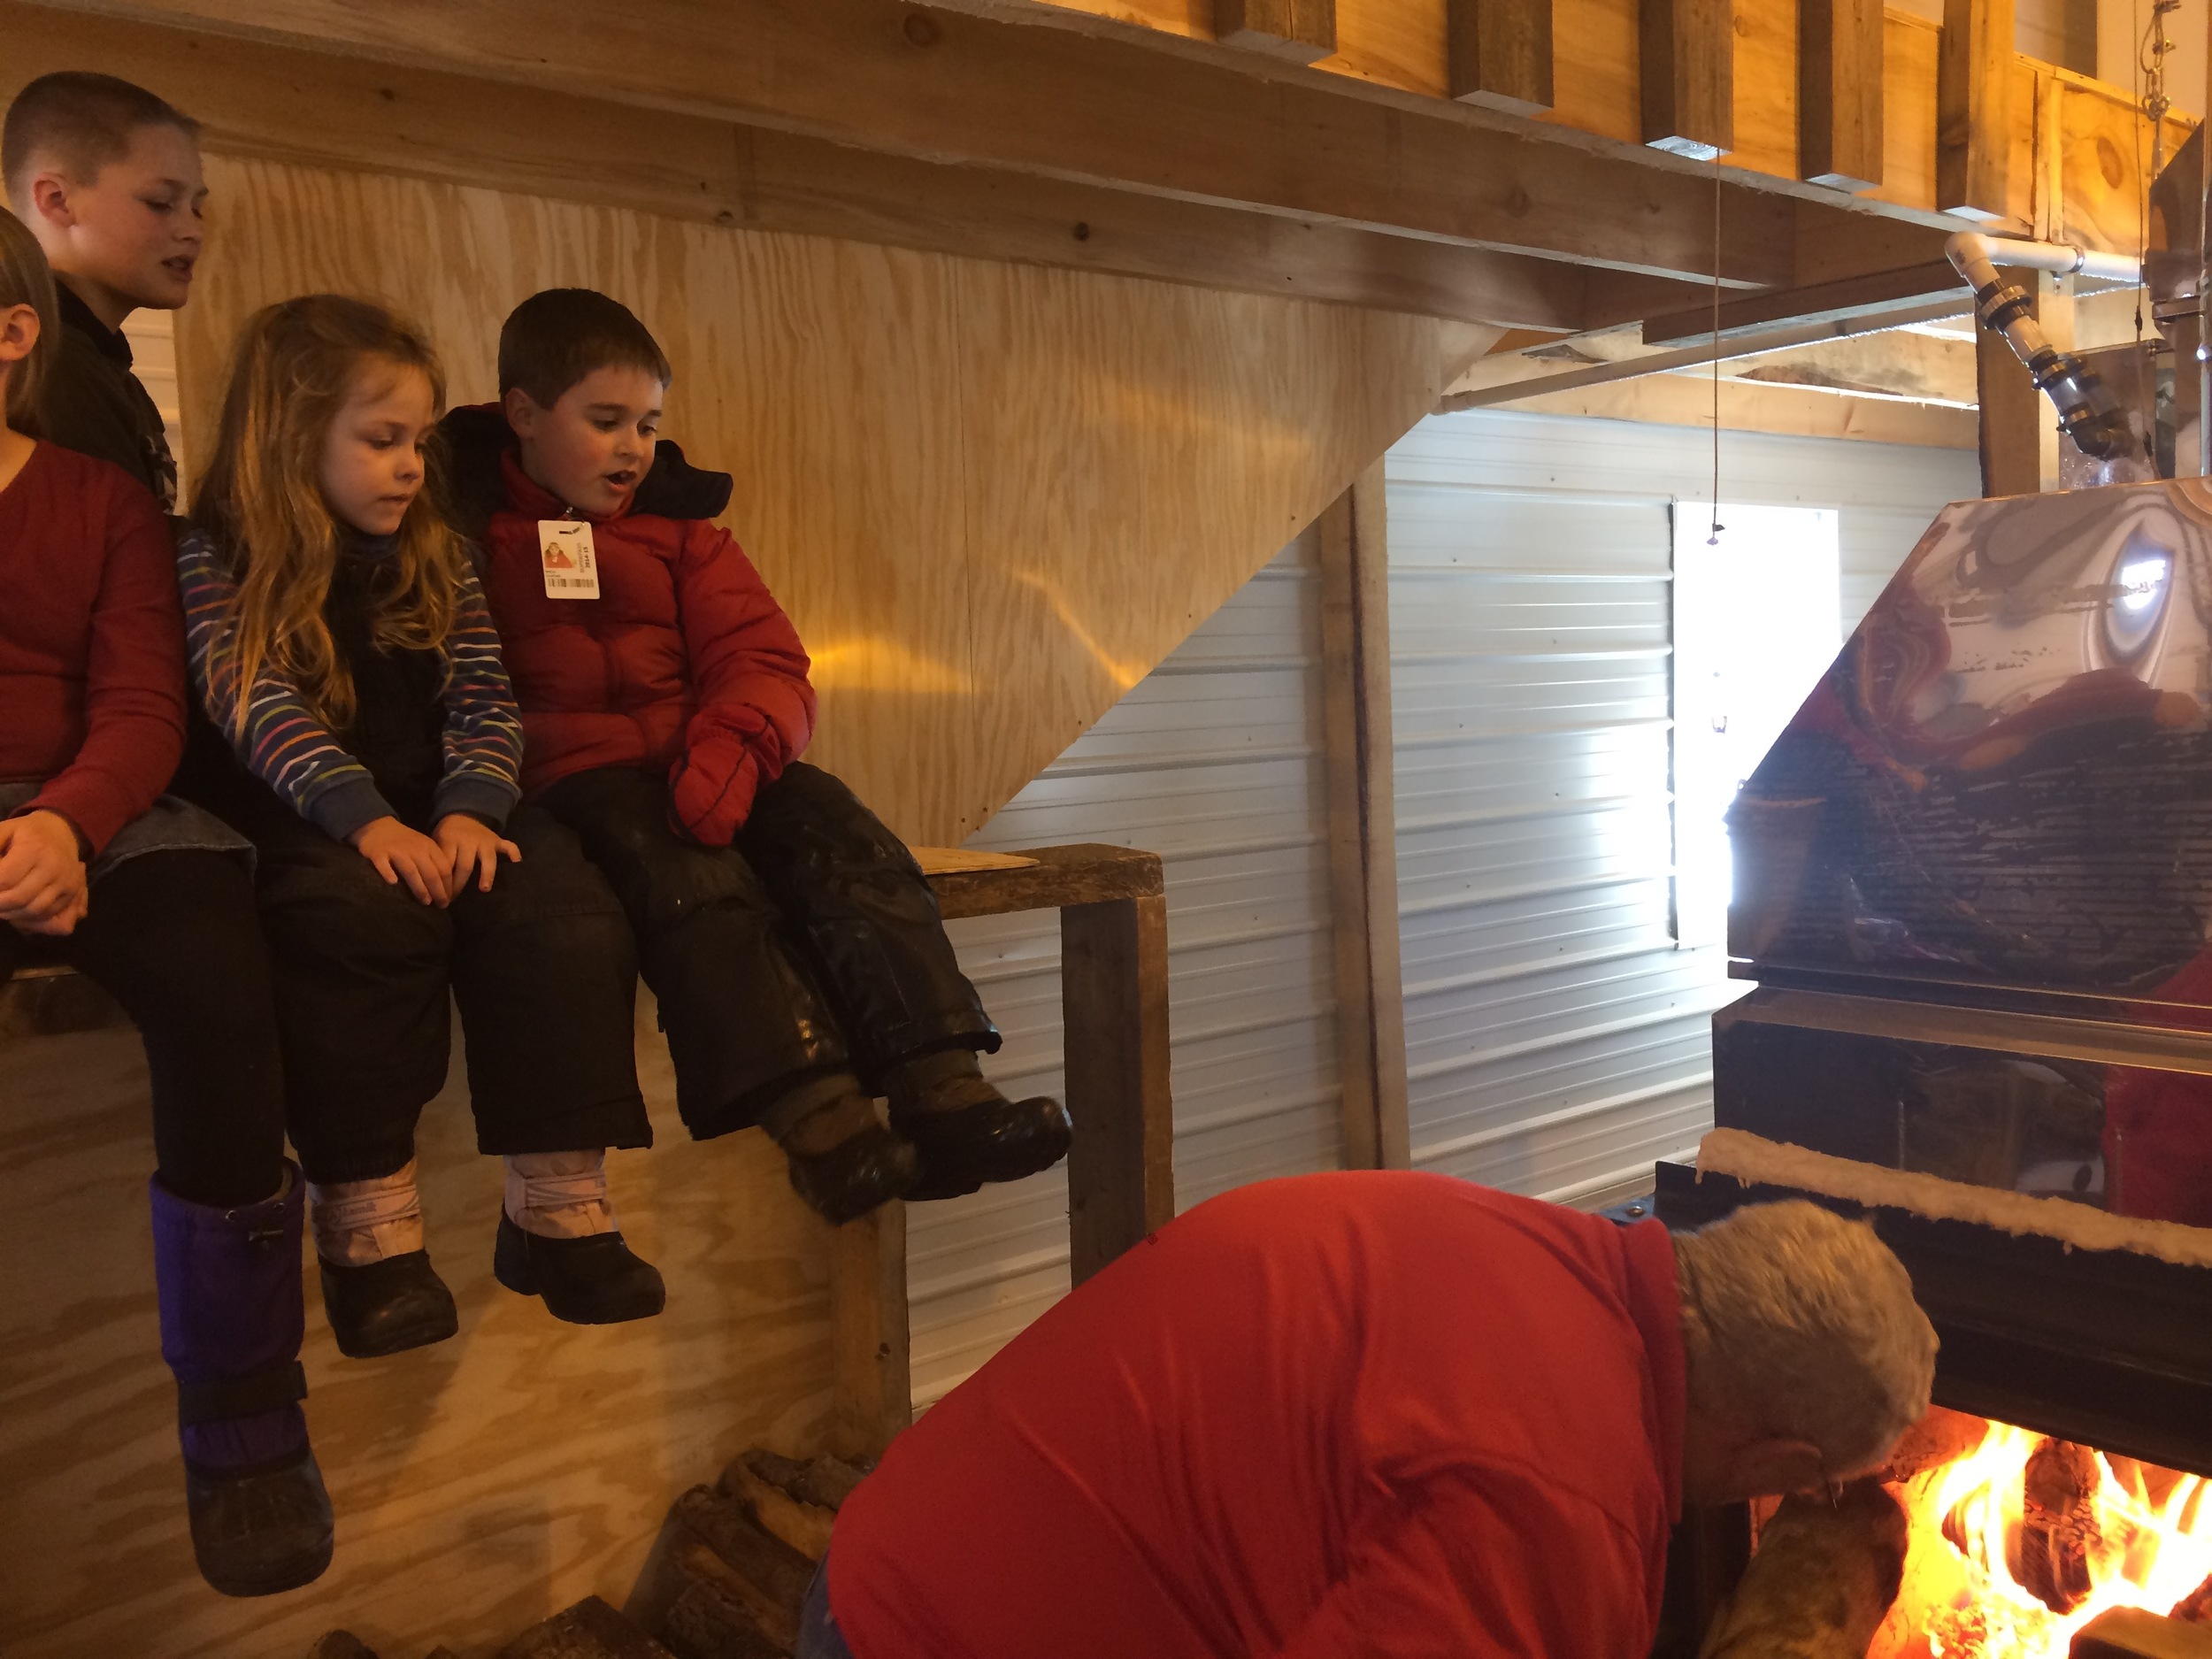 Grandchildren look on from a safe vantage point as Grandad fills the firebox of the evaporator.